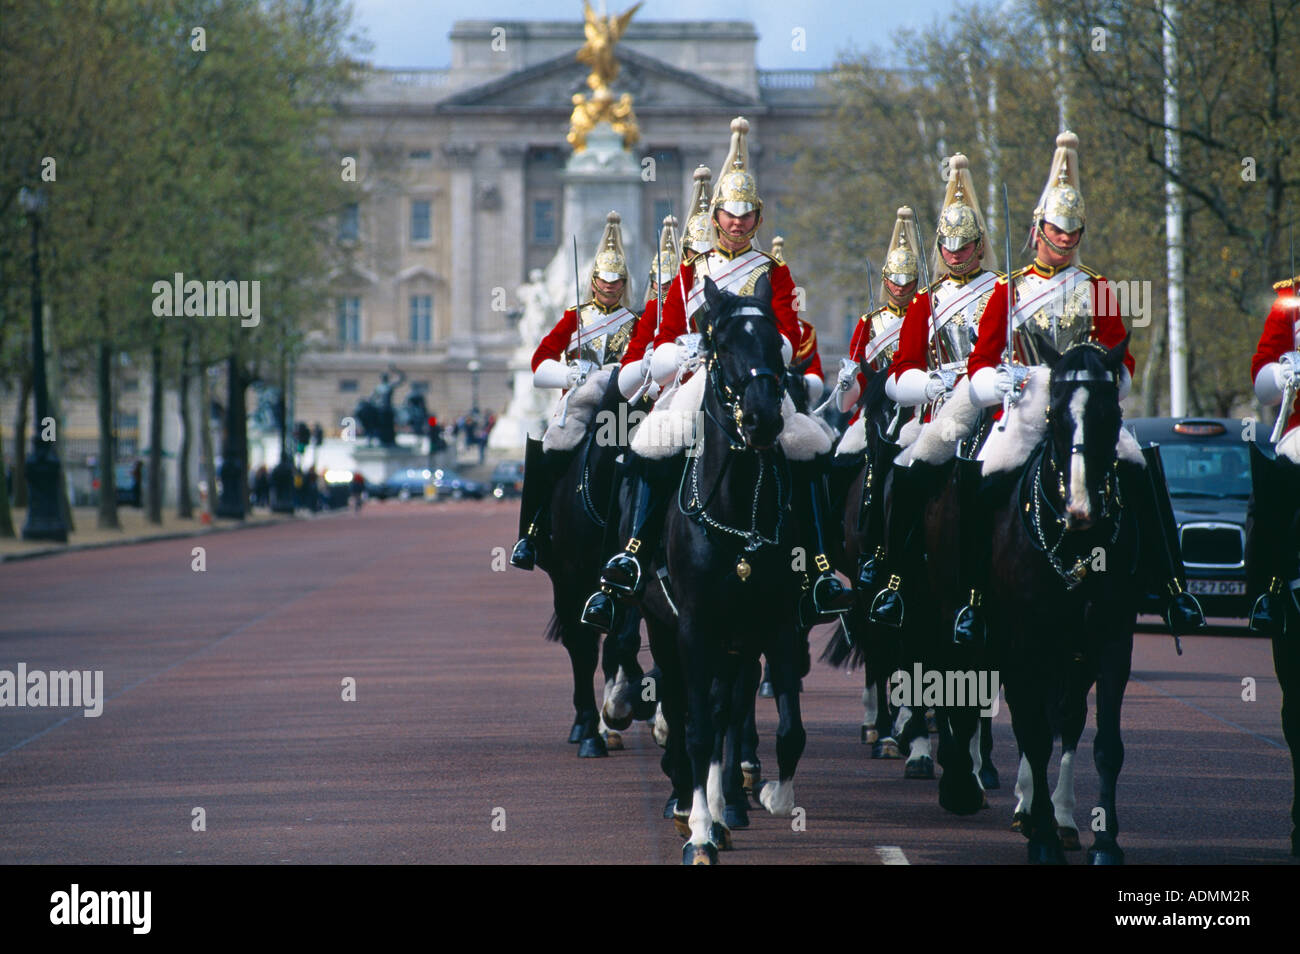 the Household Cavalry the Life Guards riding up the Mall with Buckingham Palace beyond London UK - Stock Image